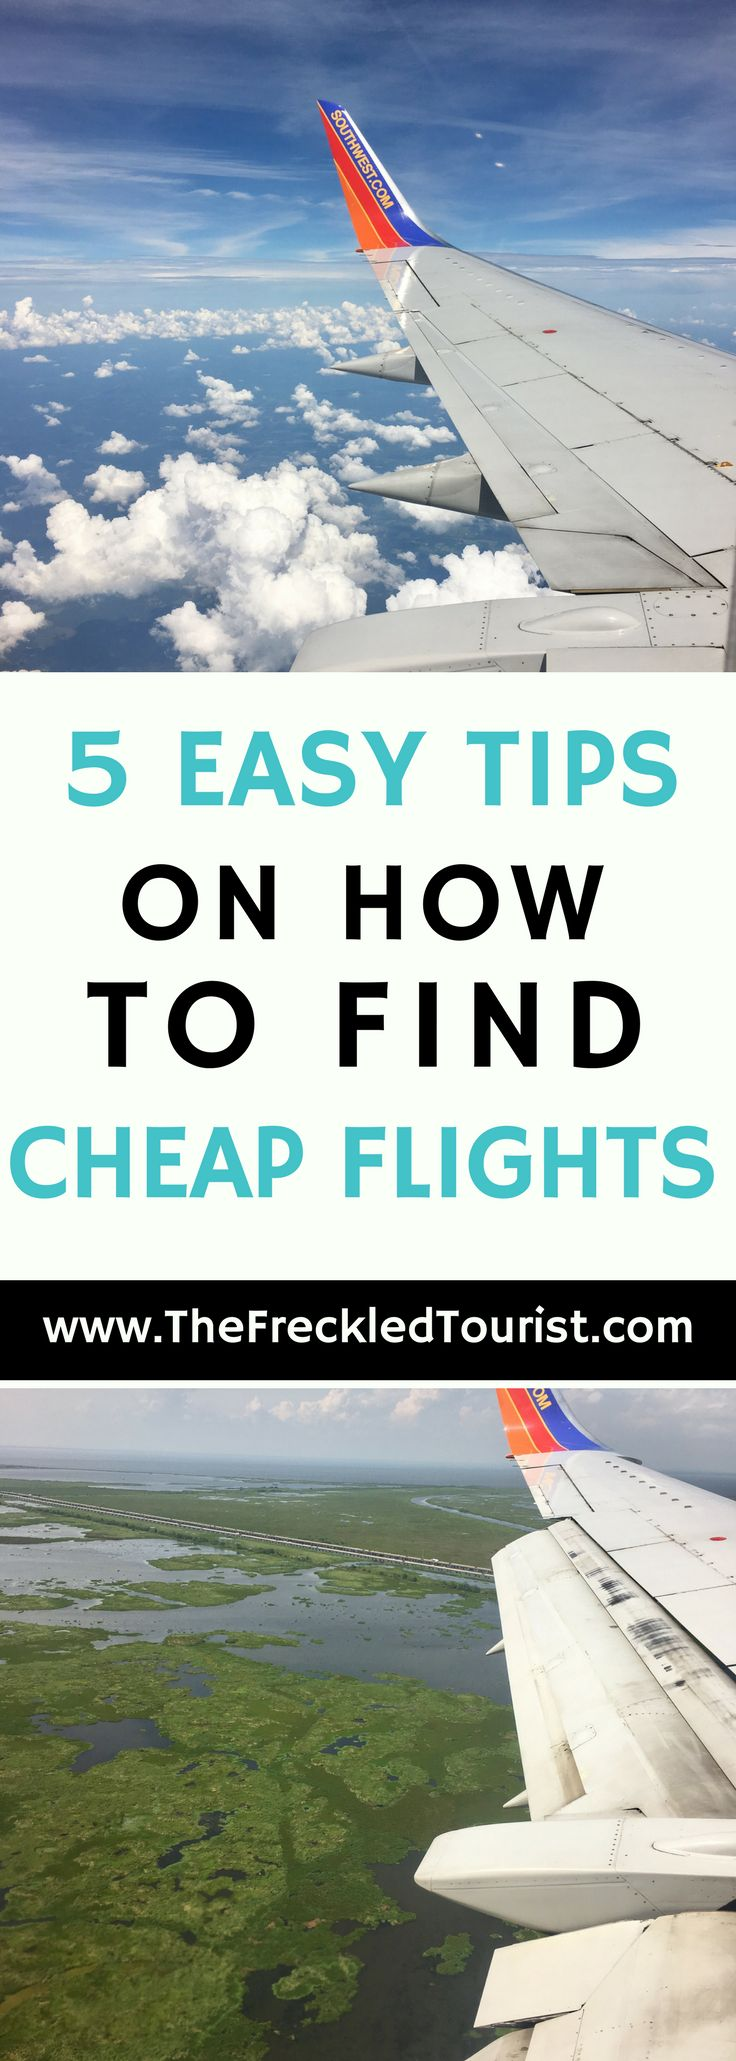 Tips and Tricks on How to Find Cheap Flights